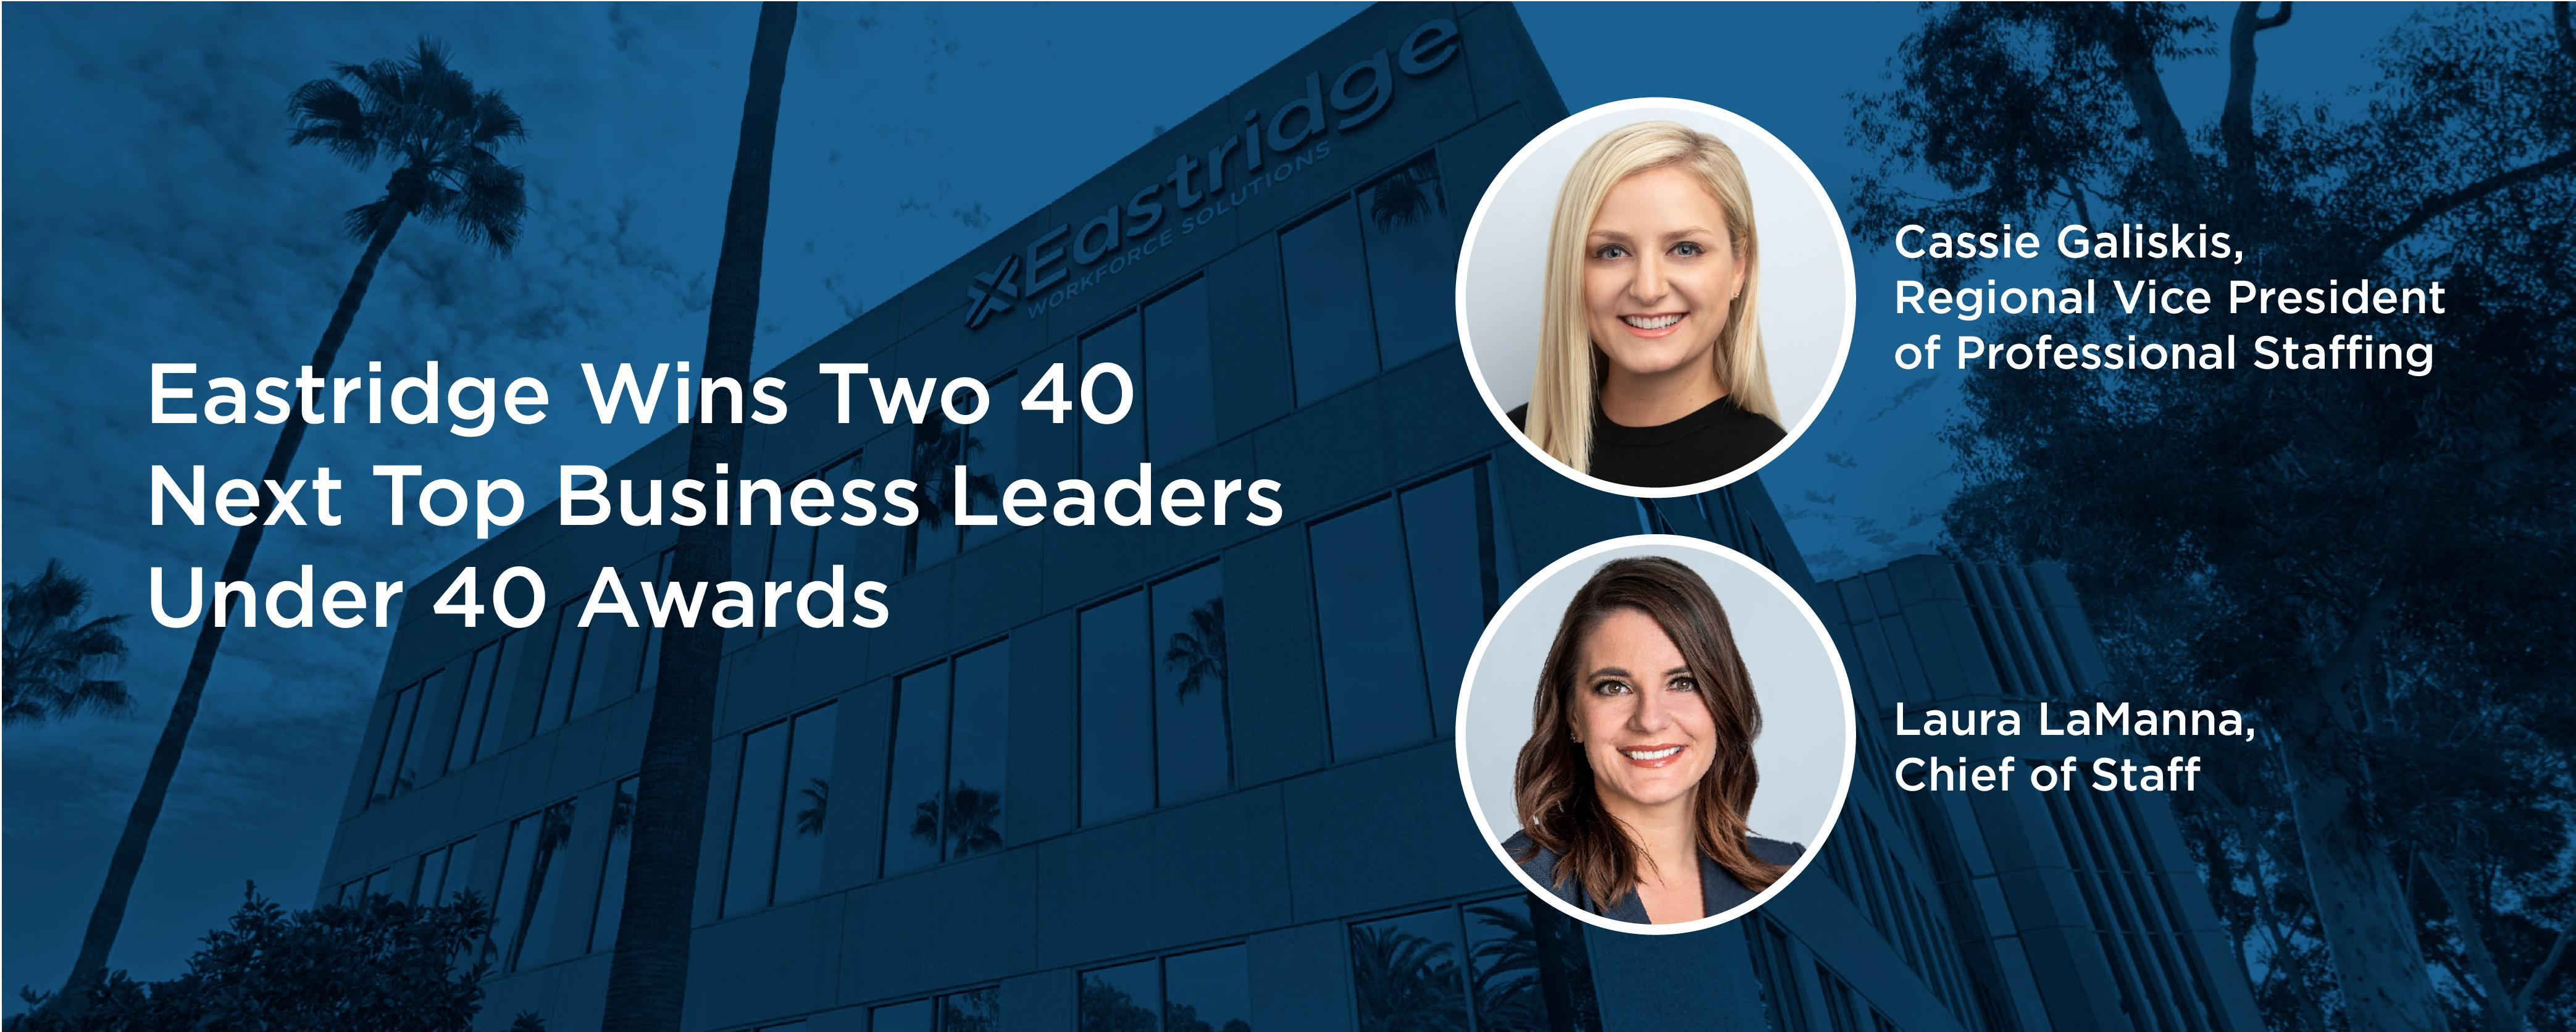 Eastridge Wins Two 40 Next Top Business Leaders Under 40 Awards